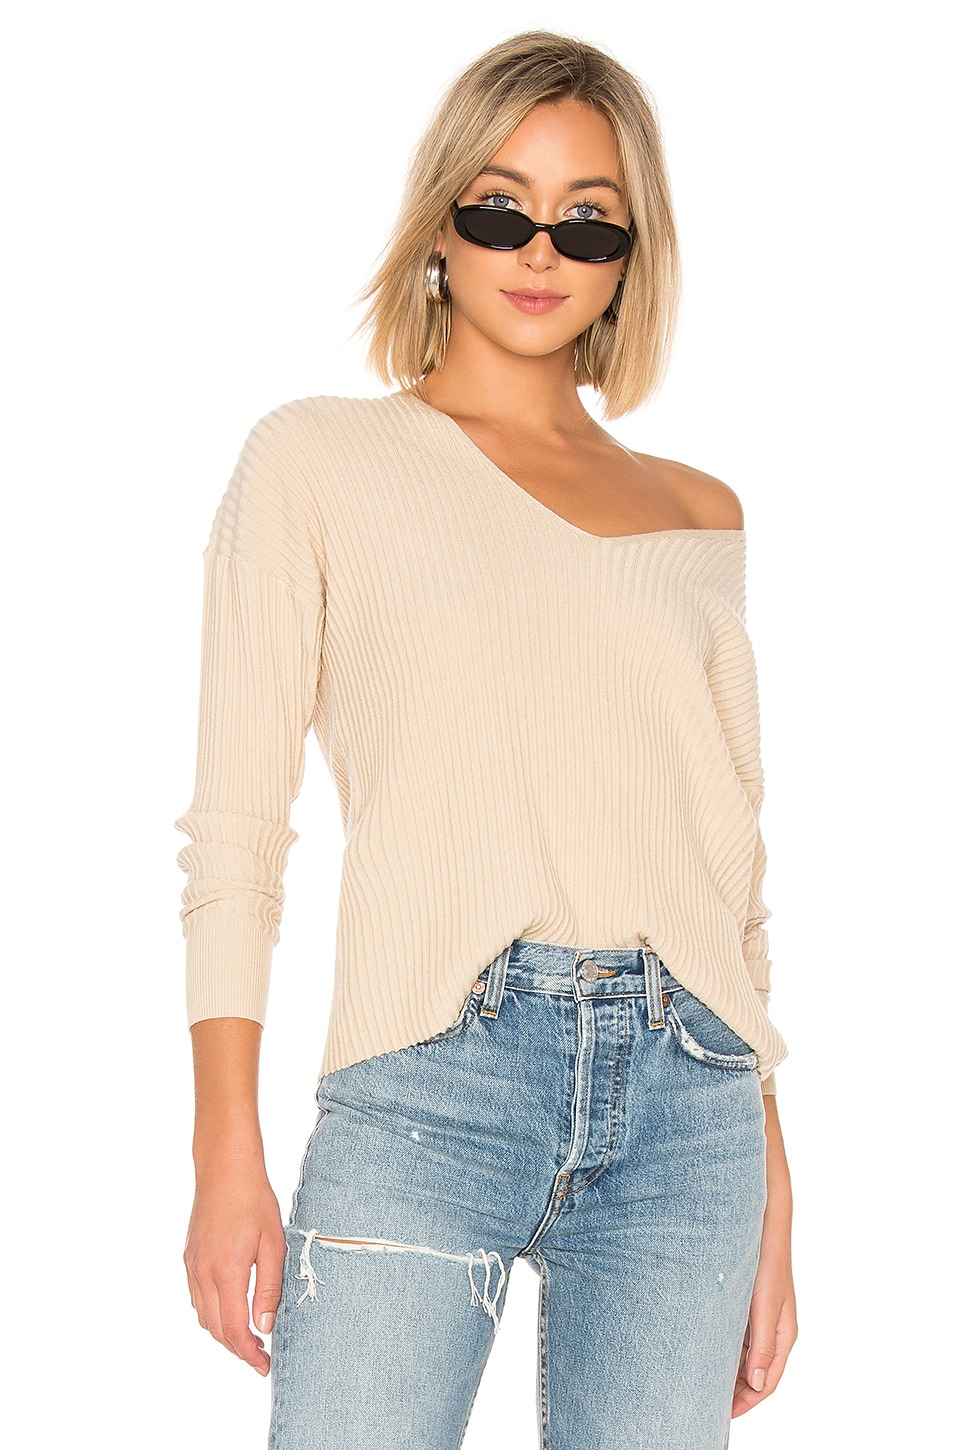 House of Harlow 1960 x REVOLVE Miles Pullover in Nude